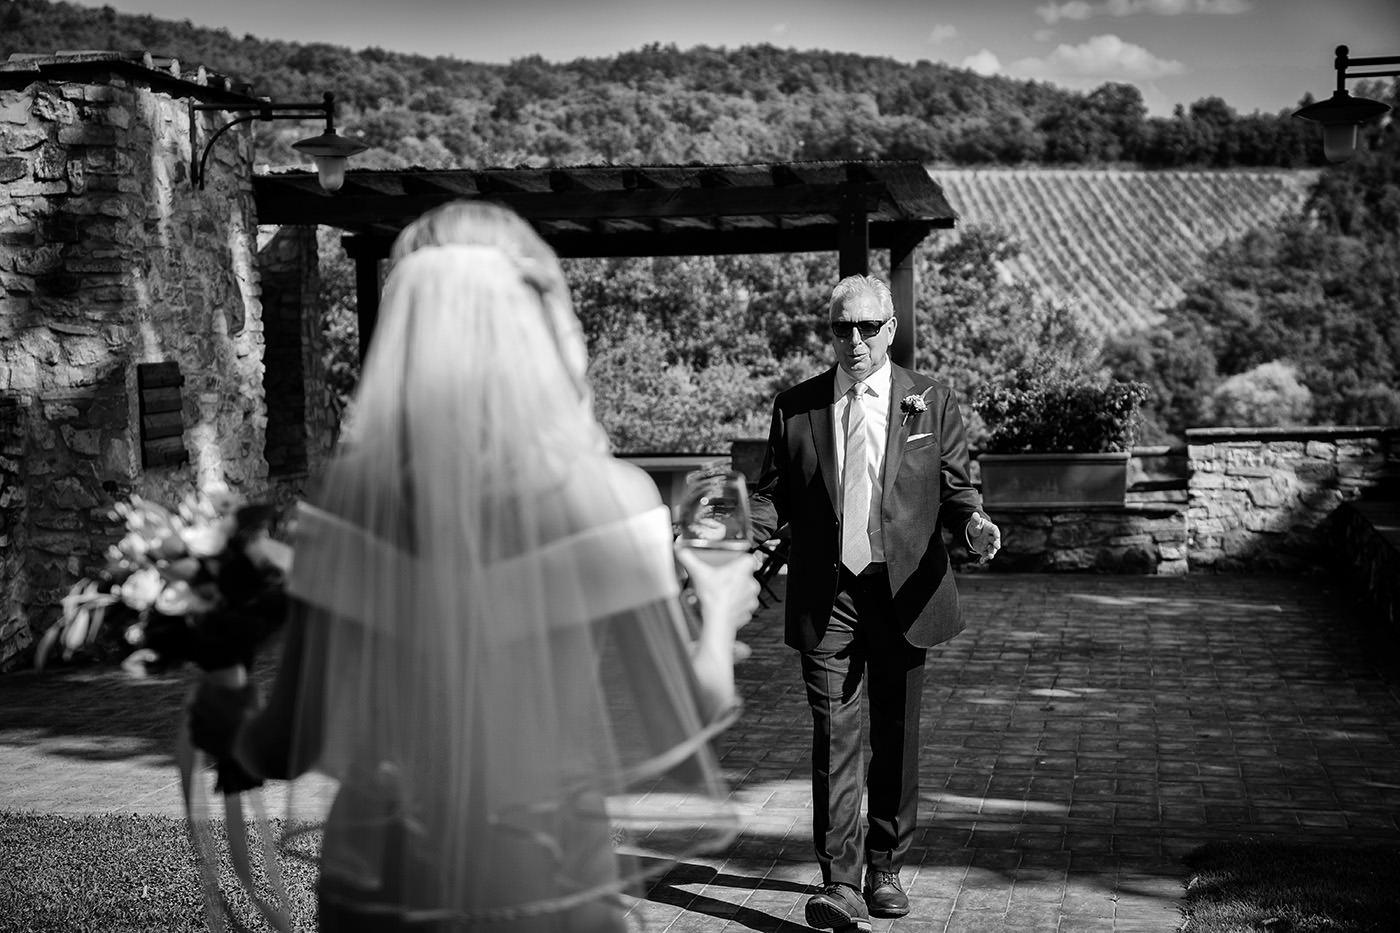 Duccio Argentini: Tuscan Wedding Photo Shoots At Palagio Castle. First look between bride with her father